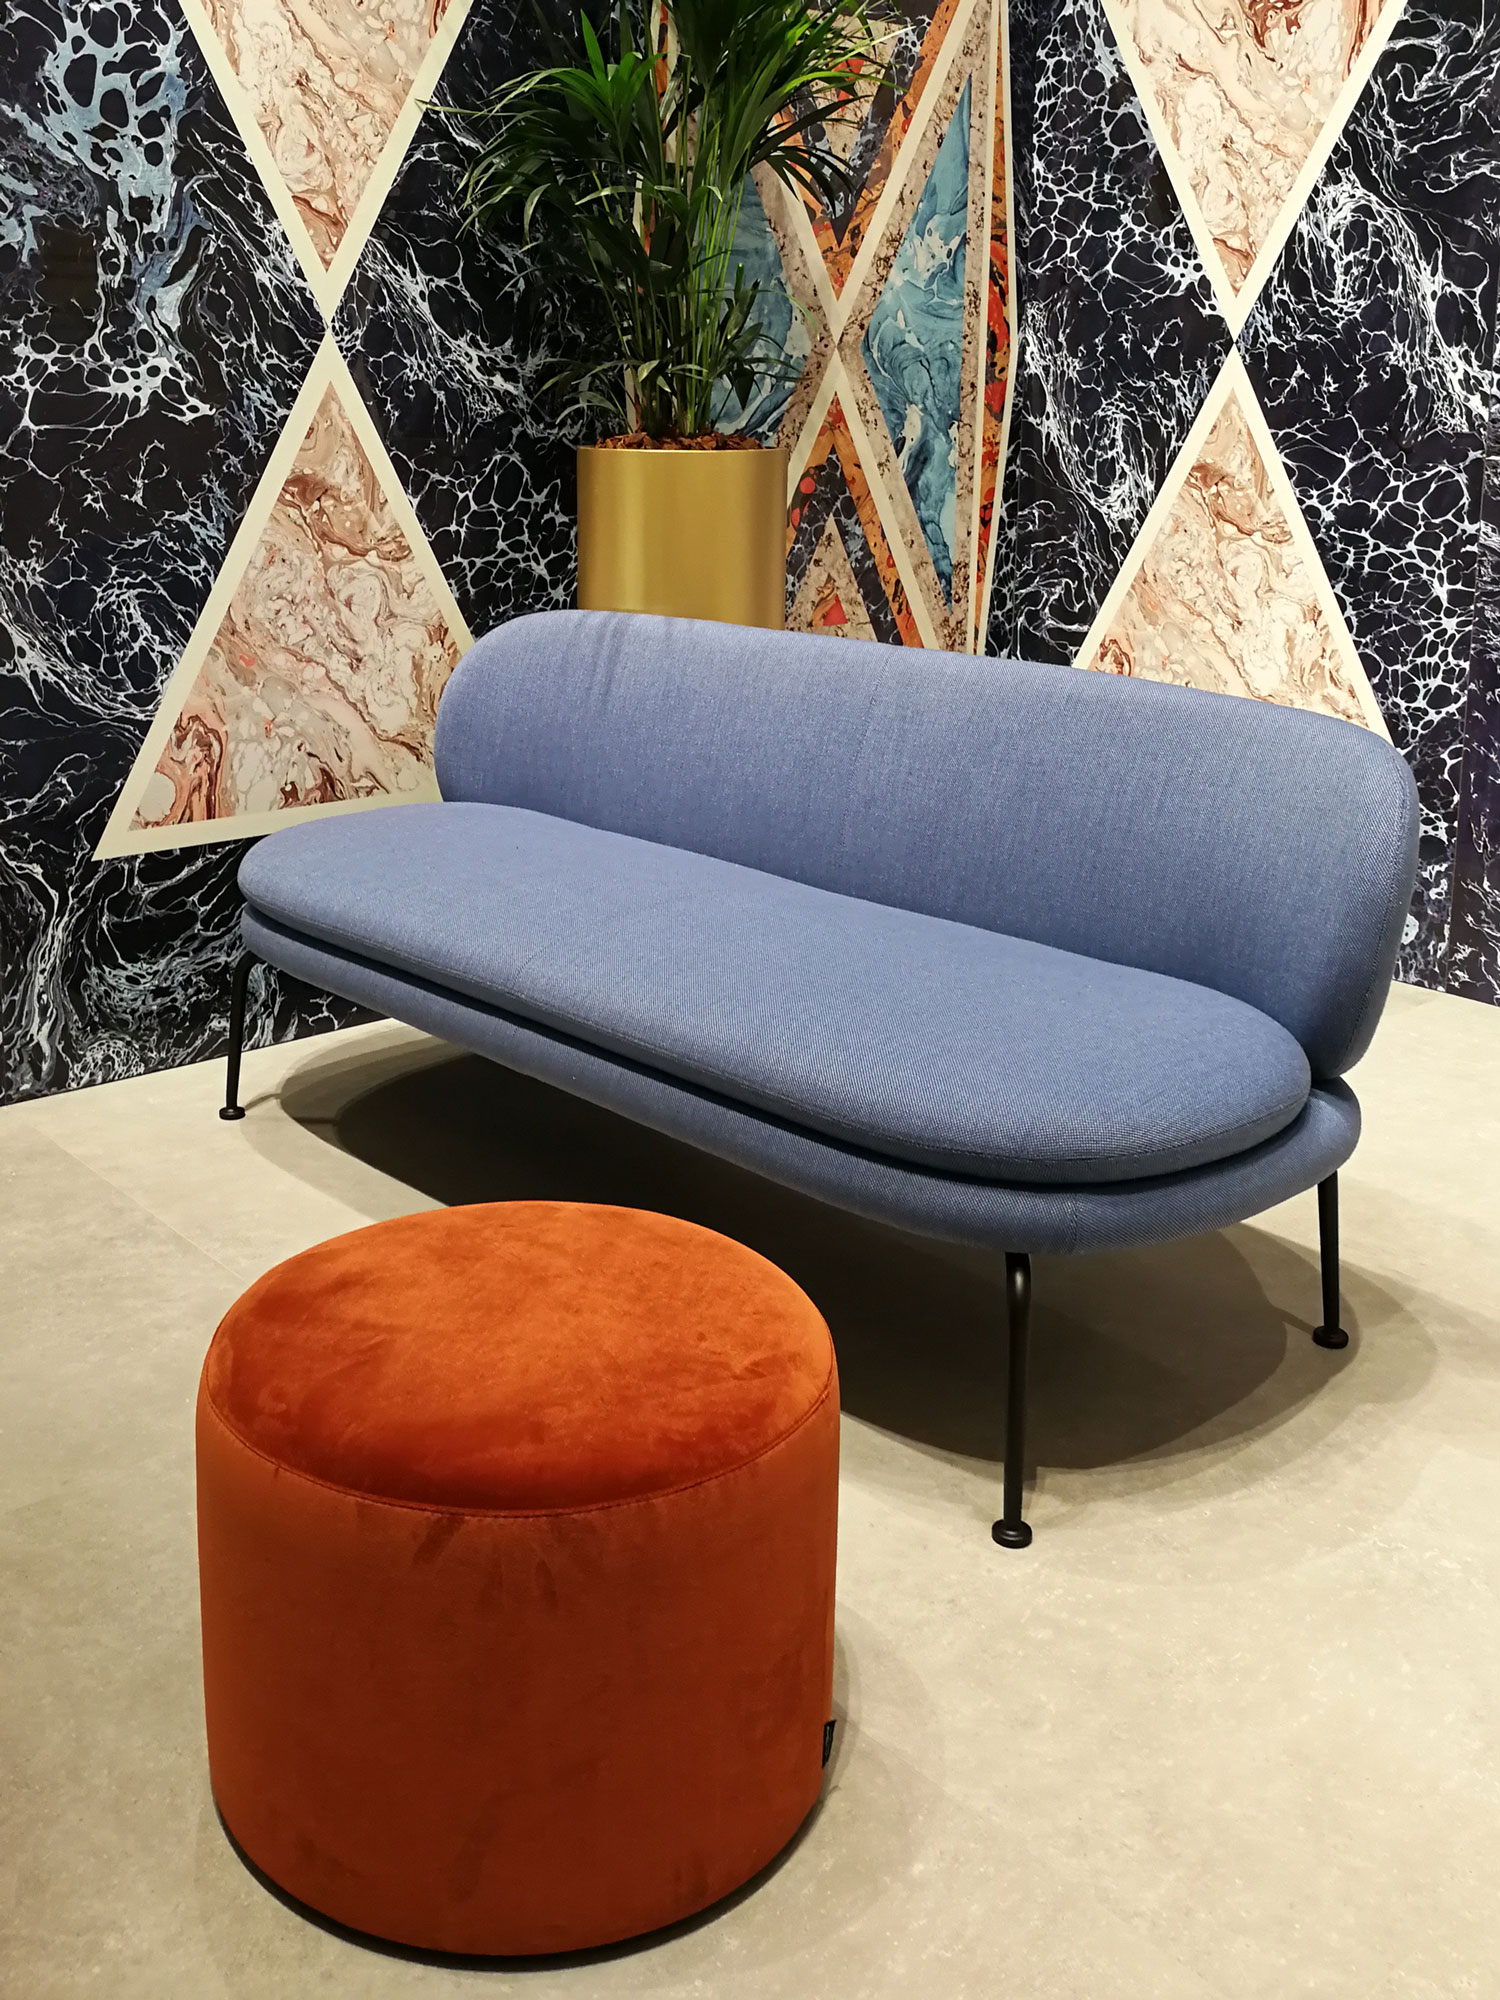 Curves and round shapes - new interior trend for 2019 and 2020